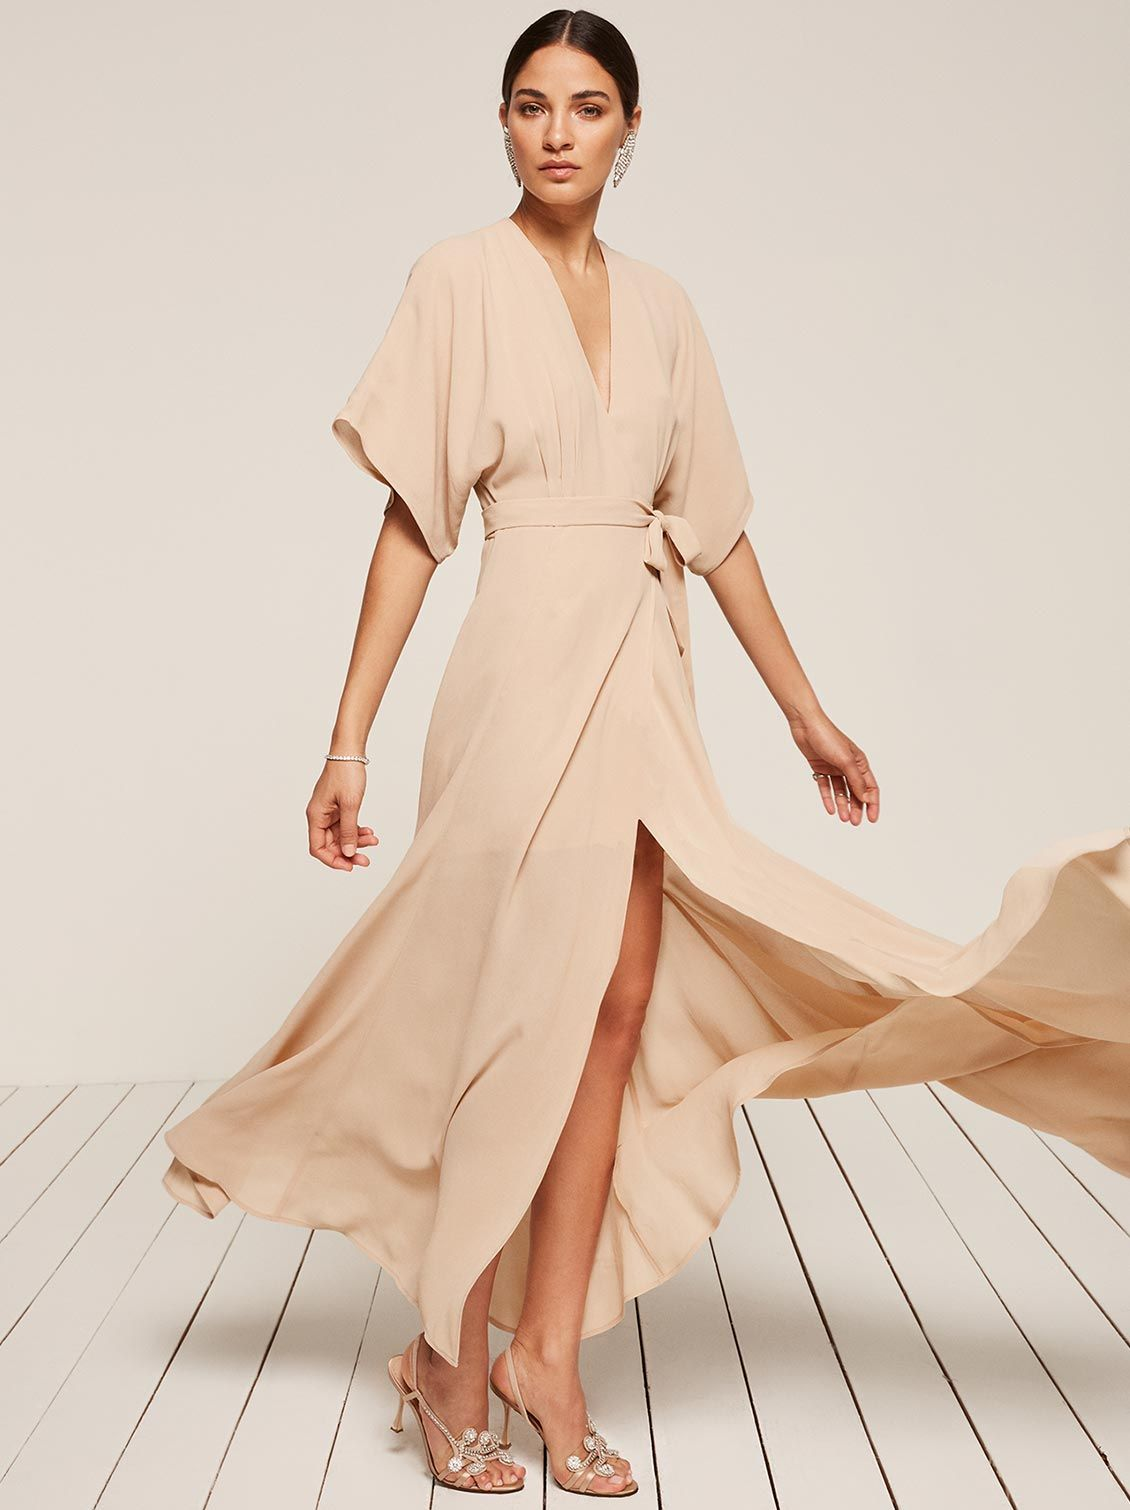 Rosehip dress reformation naked and wedding guest dresses